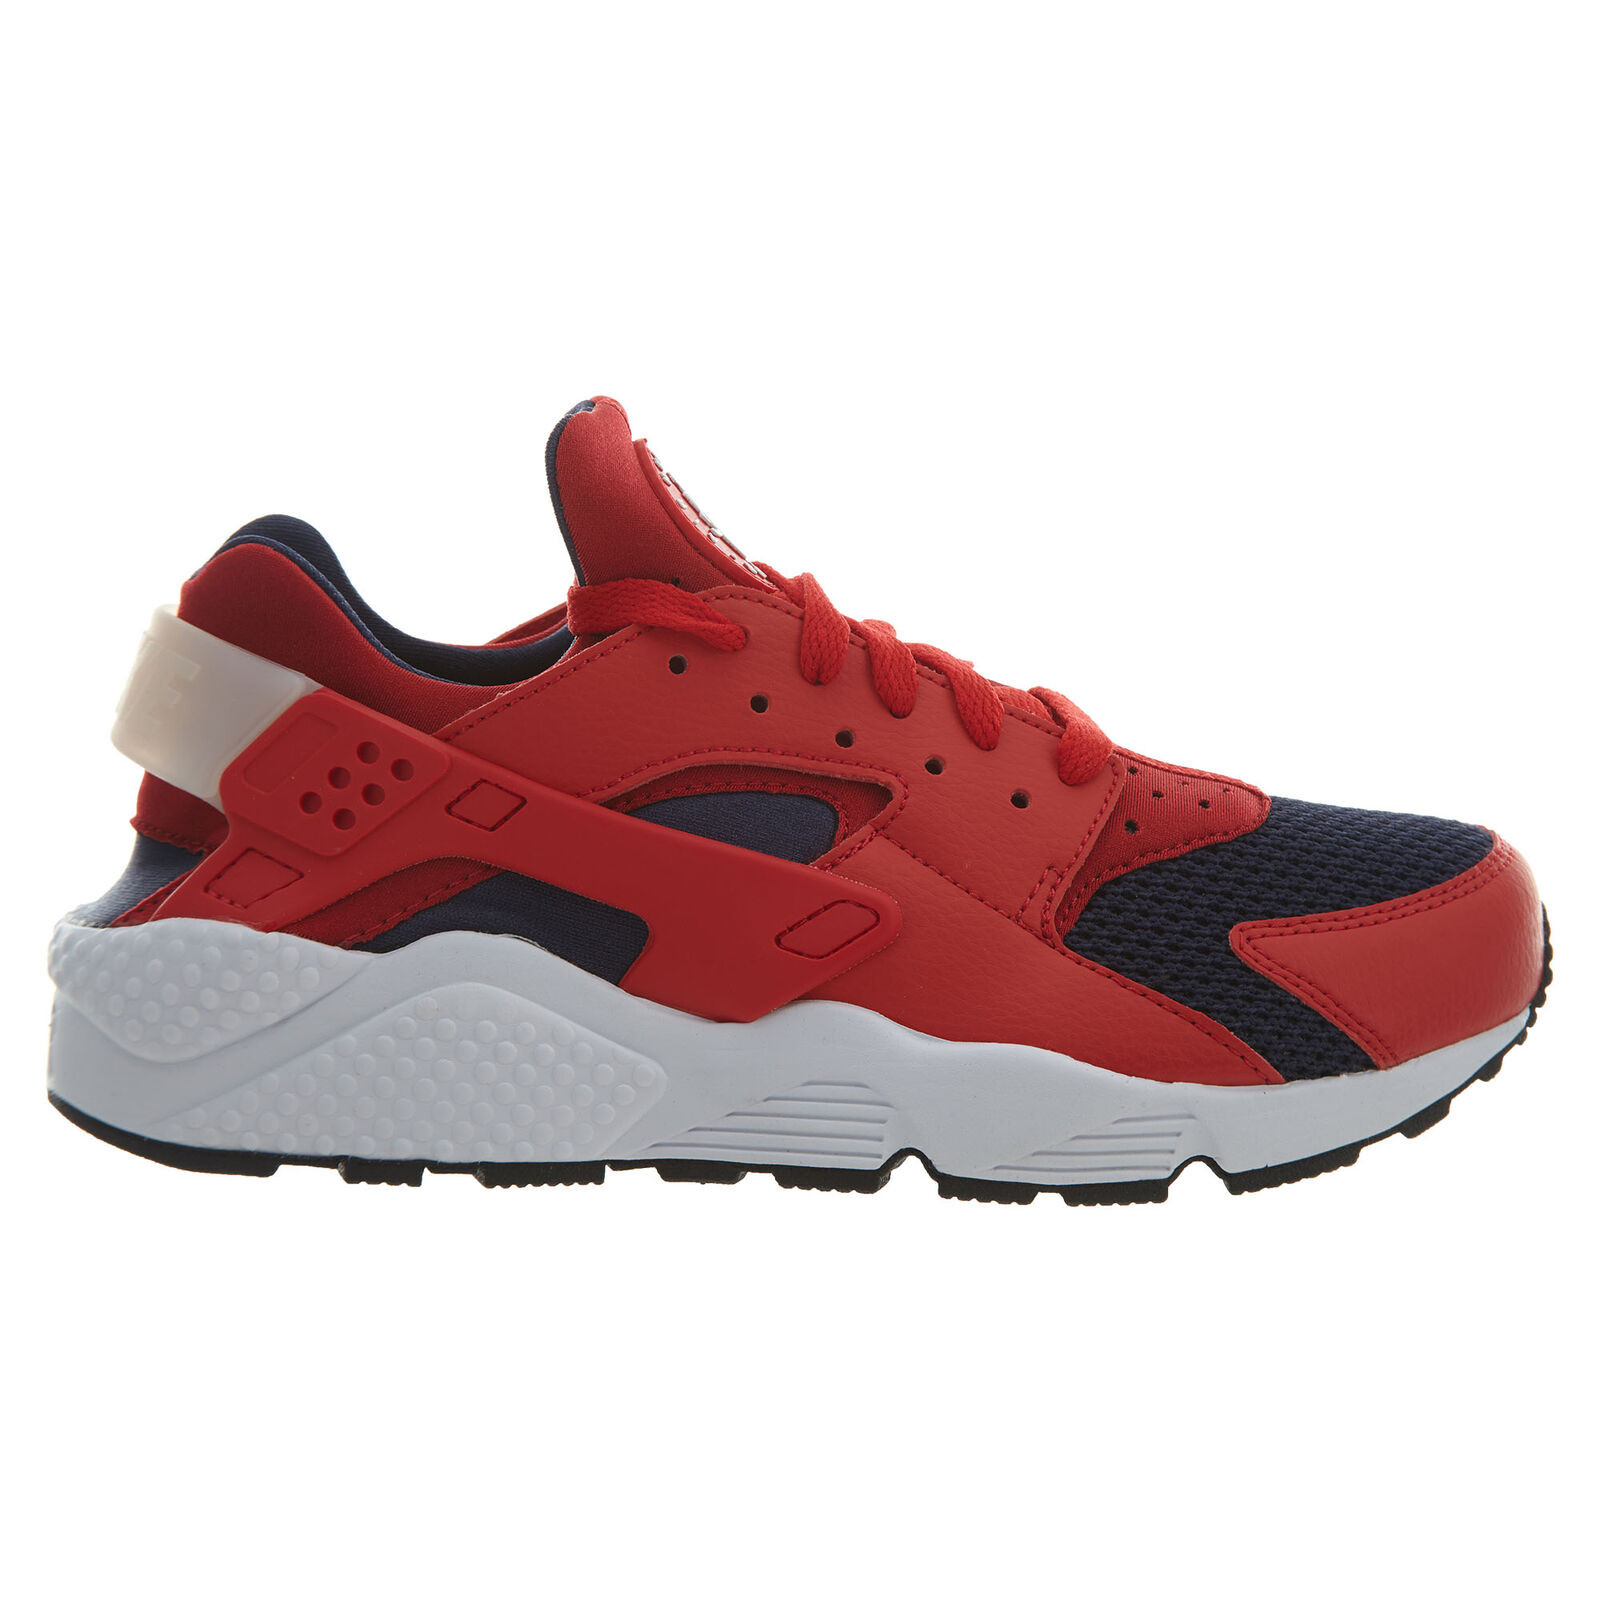 Nike Air Huarache Varsity Pack Mens 318429-611 Red White Running Shoes Comfortable Seasonal clearance sale